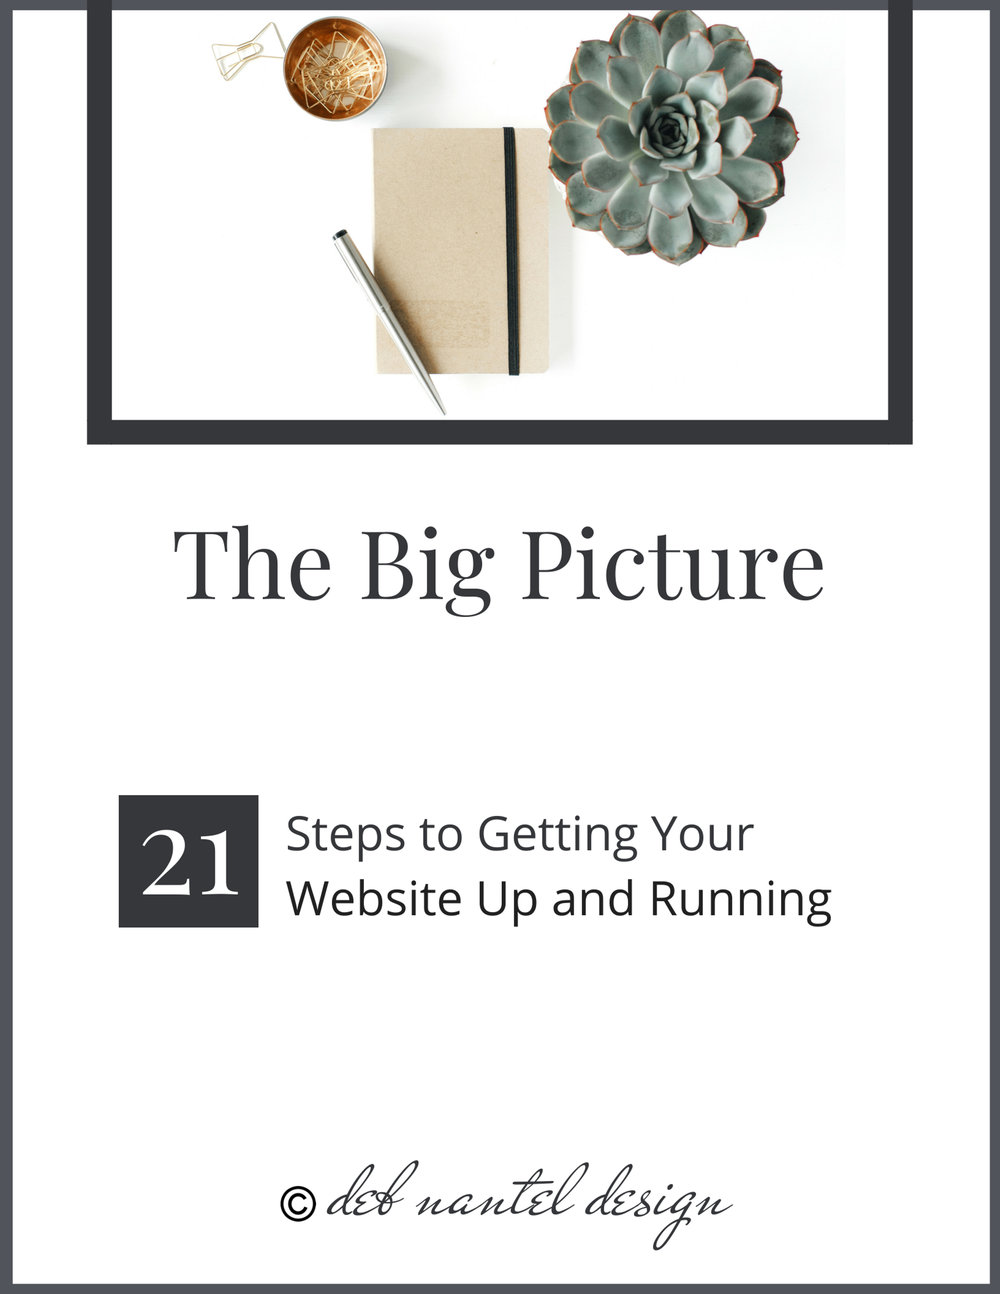 Deb Mantel's 21 Steps to getting your website up and running.